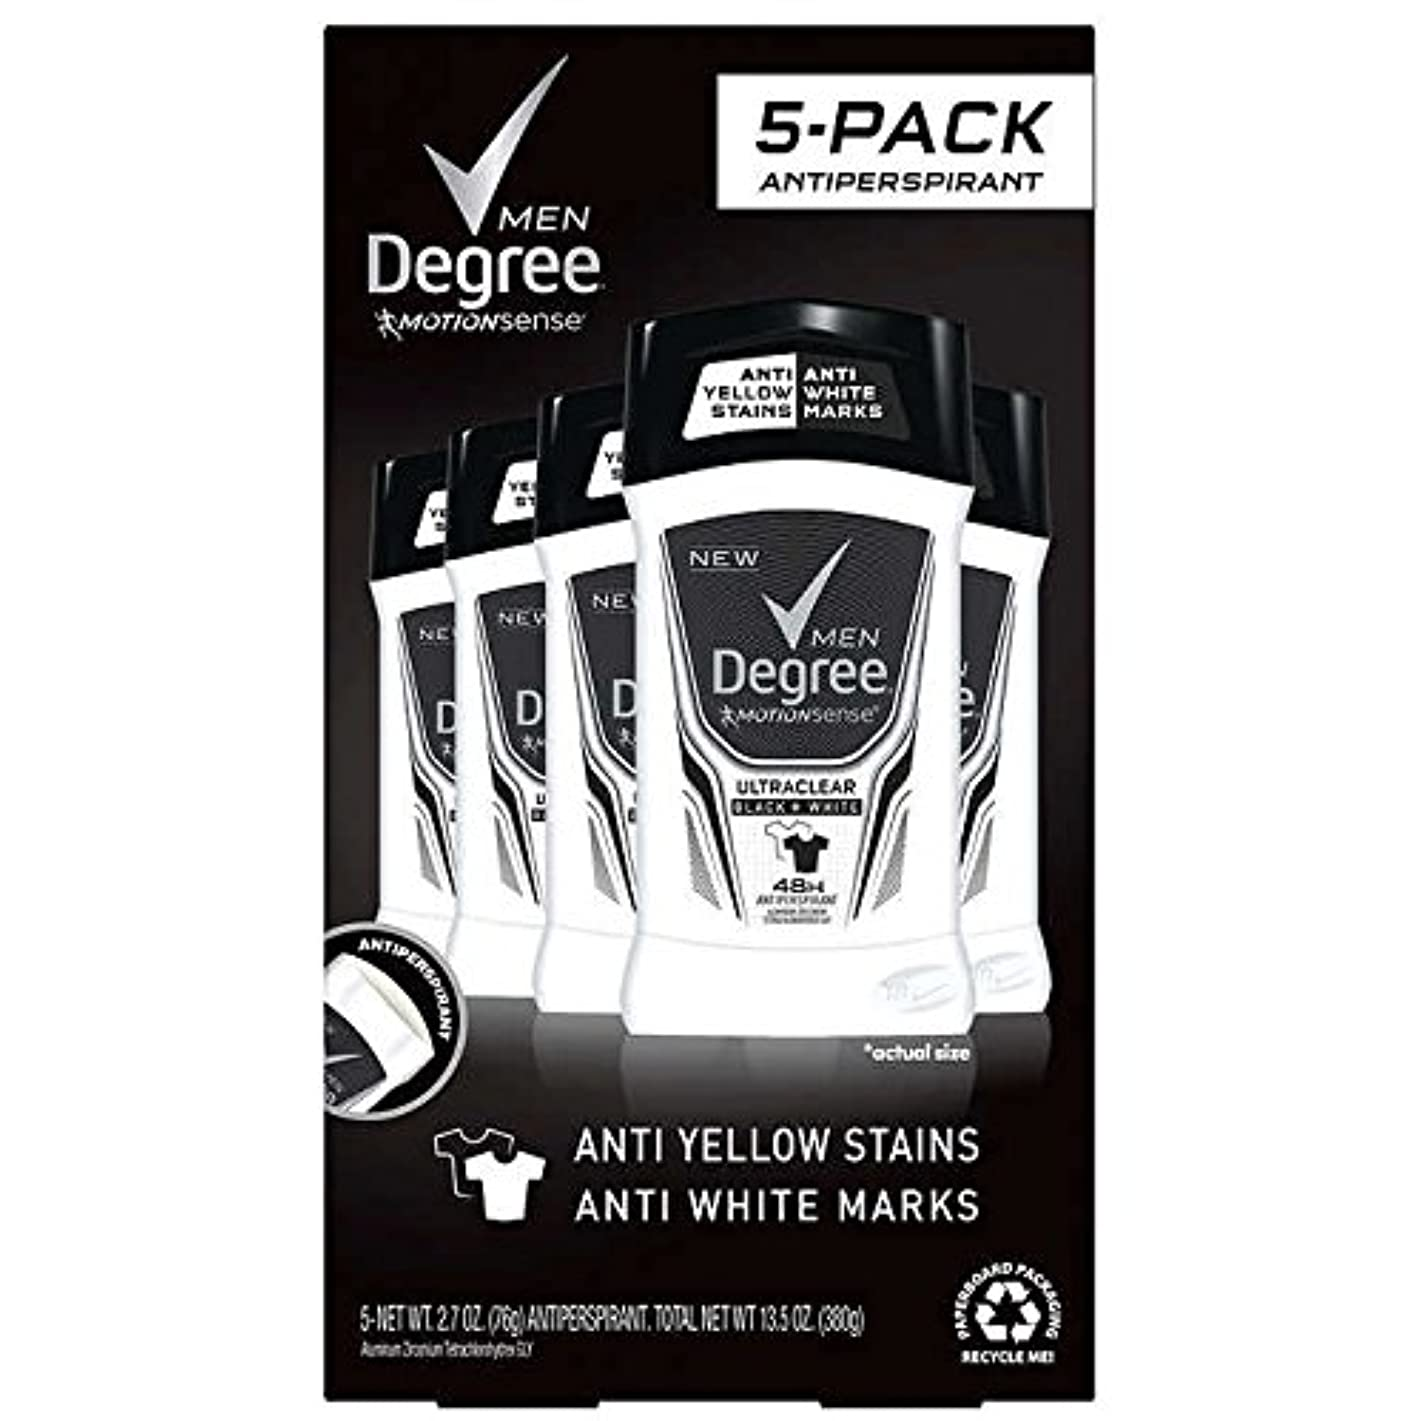 Degree Men Ultra Clear Black + White Solid Deodorant 2.7oz (76g), 5-pack [並行輸入品]